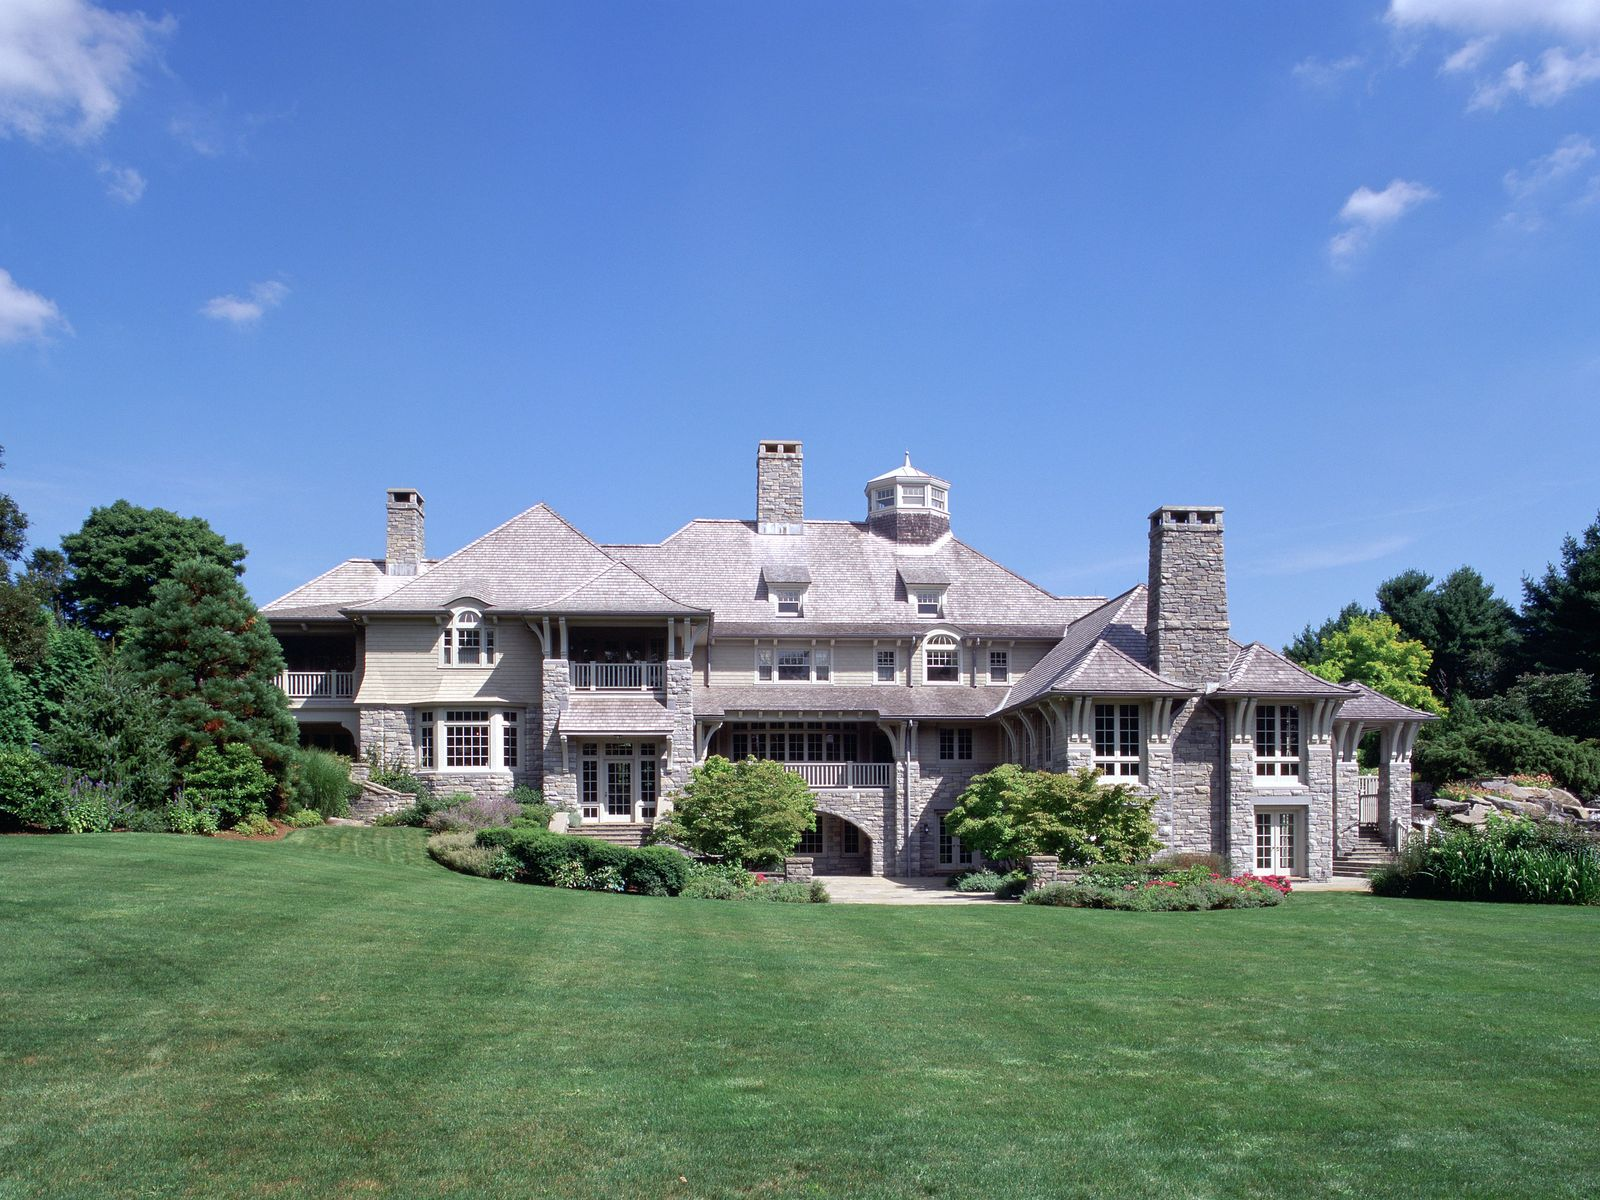 Regal on Round Hill, Greenwich CT Single Family Home - Greenwich Real Estate